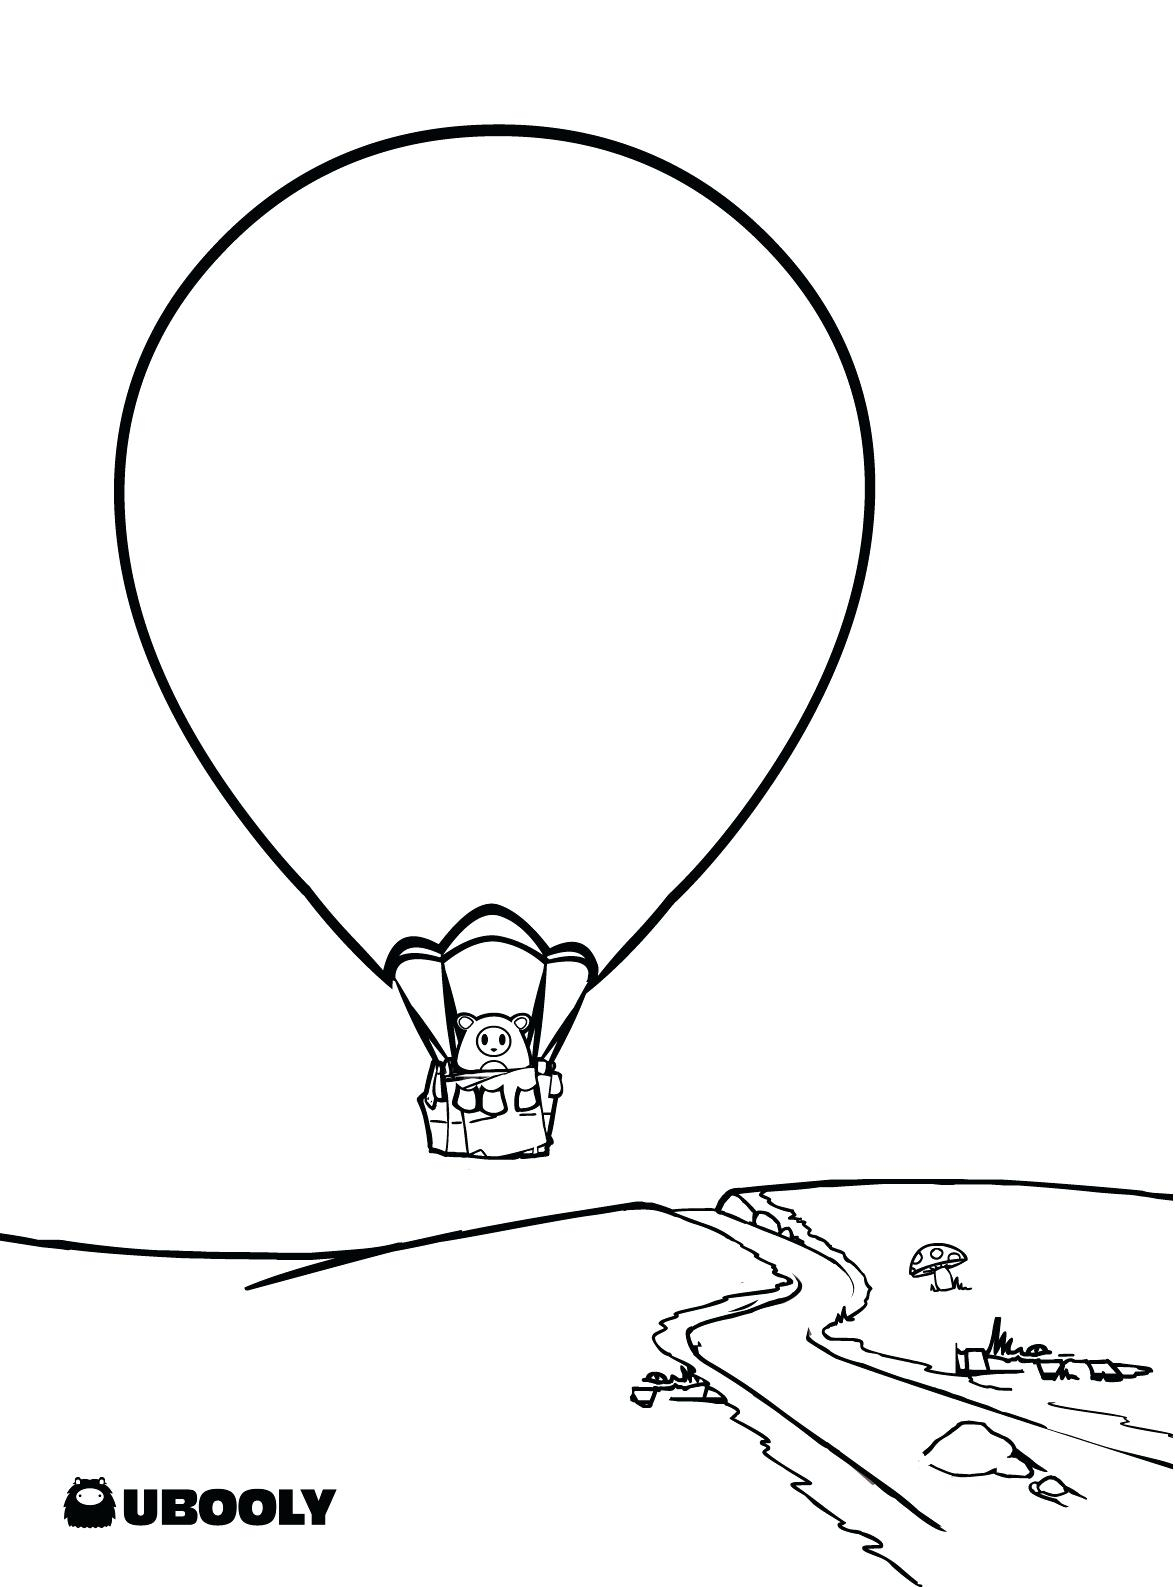 Hot Air Balloon Coloring Pages Printable 17o - Free For kids